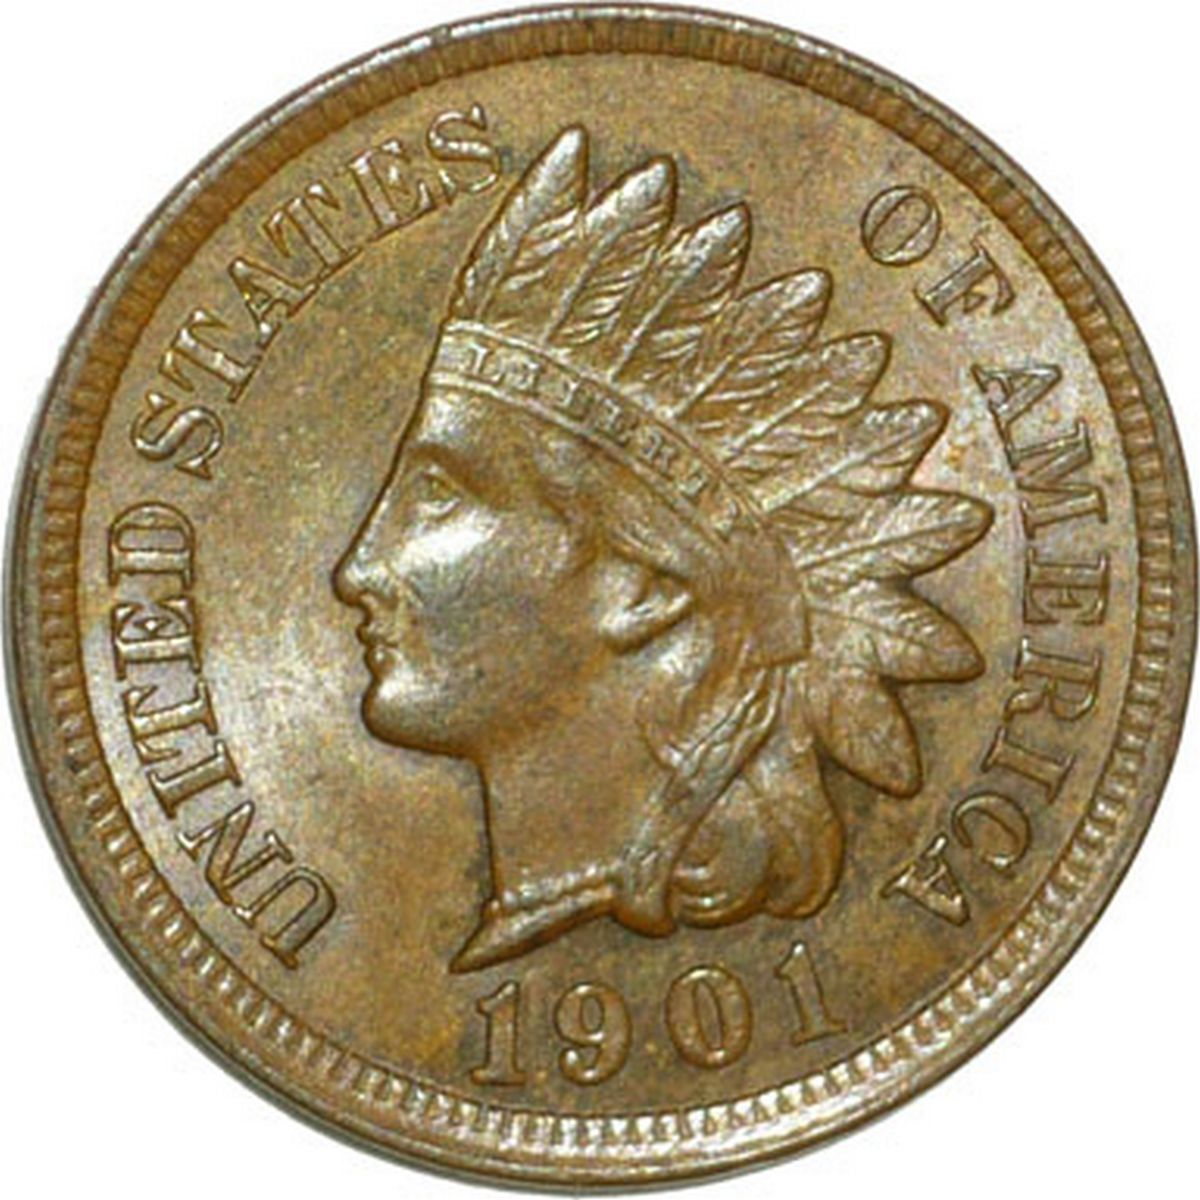 1901 RPD-024 - Indian Head Penny - Photo by David Poliquin